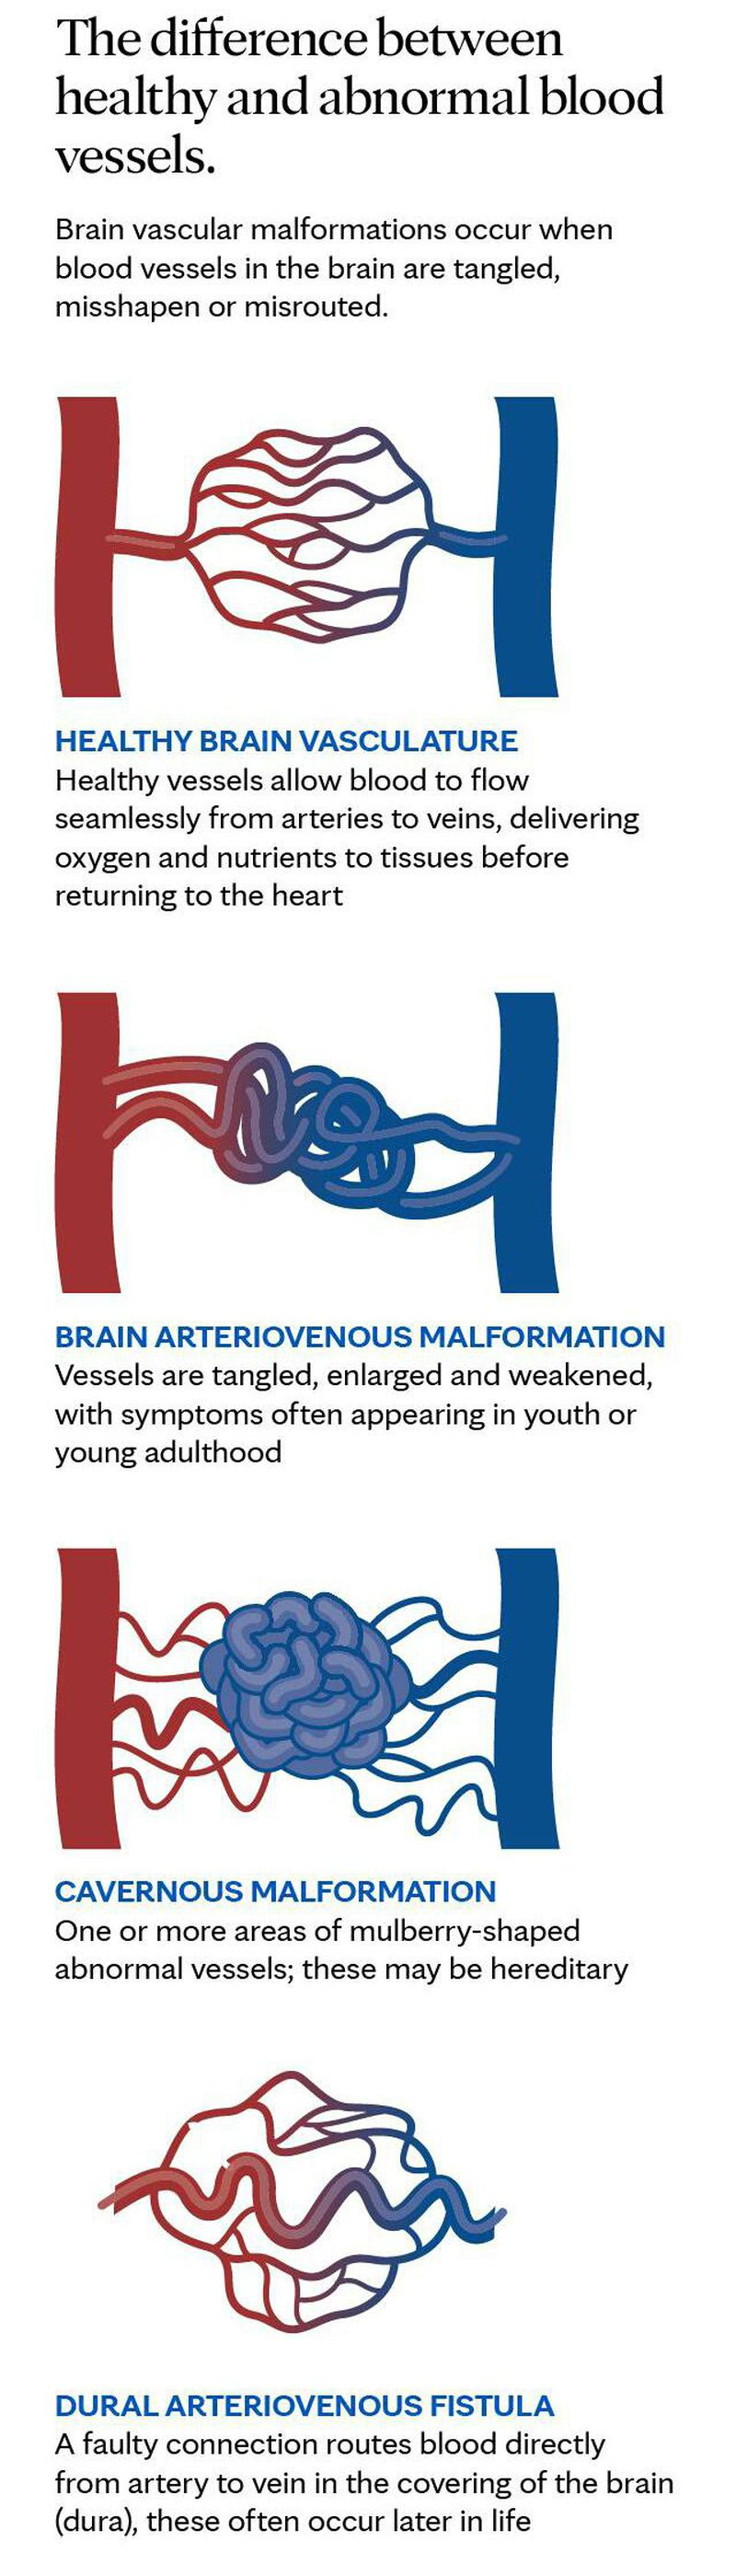 The differenec between healty and abnormal blood vessels..❤❤